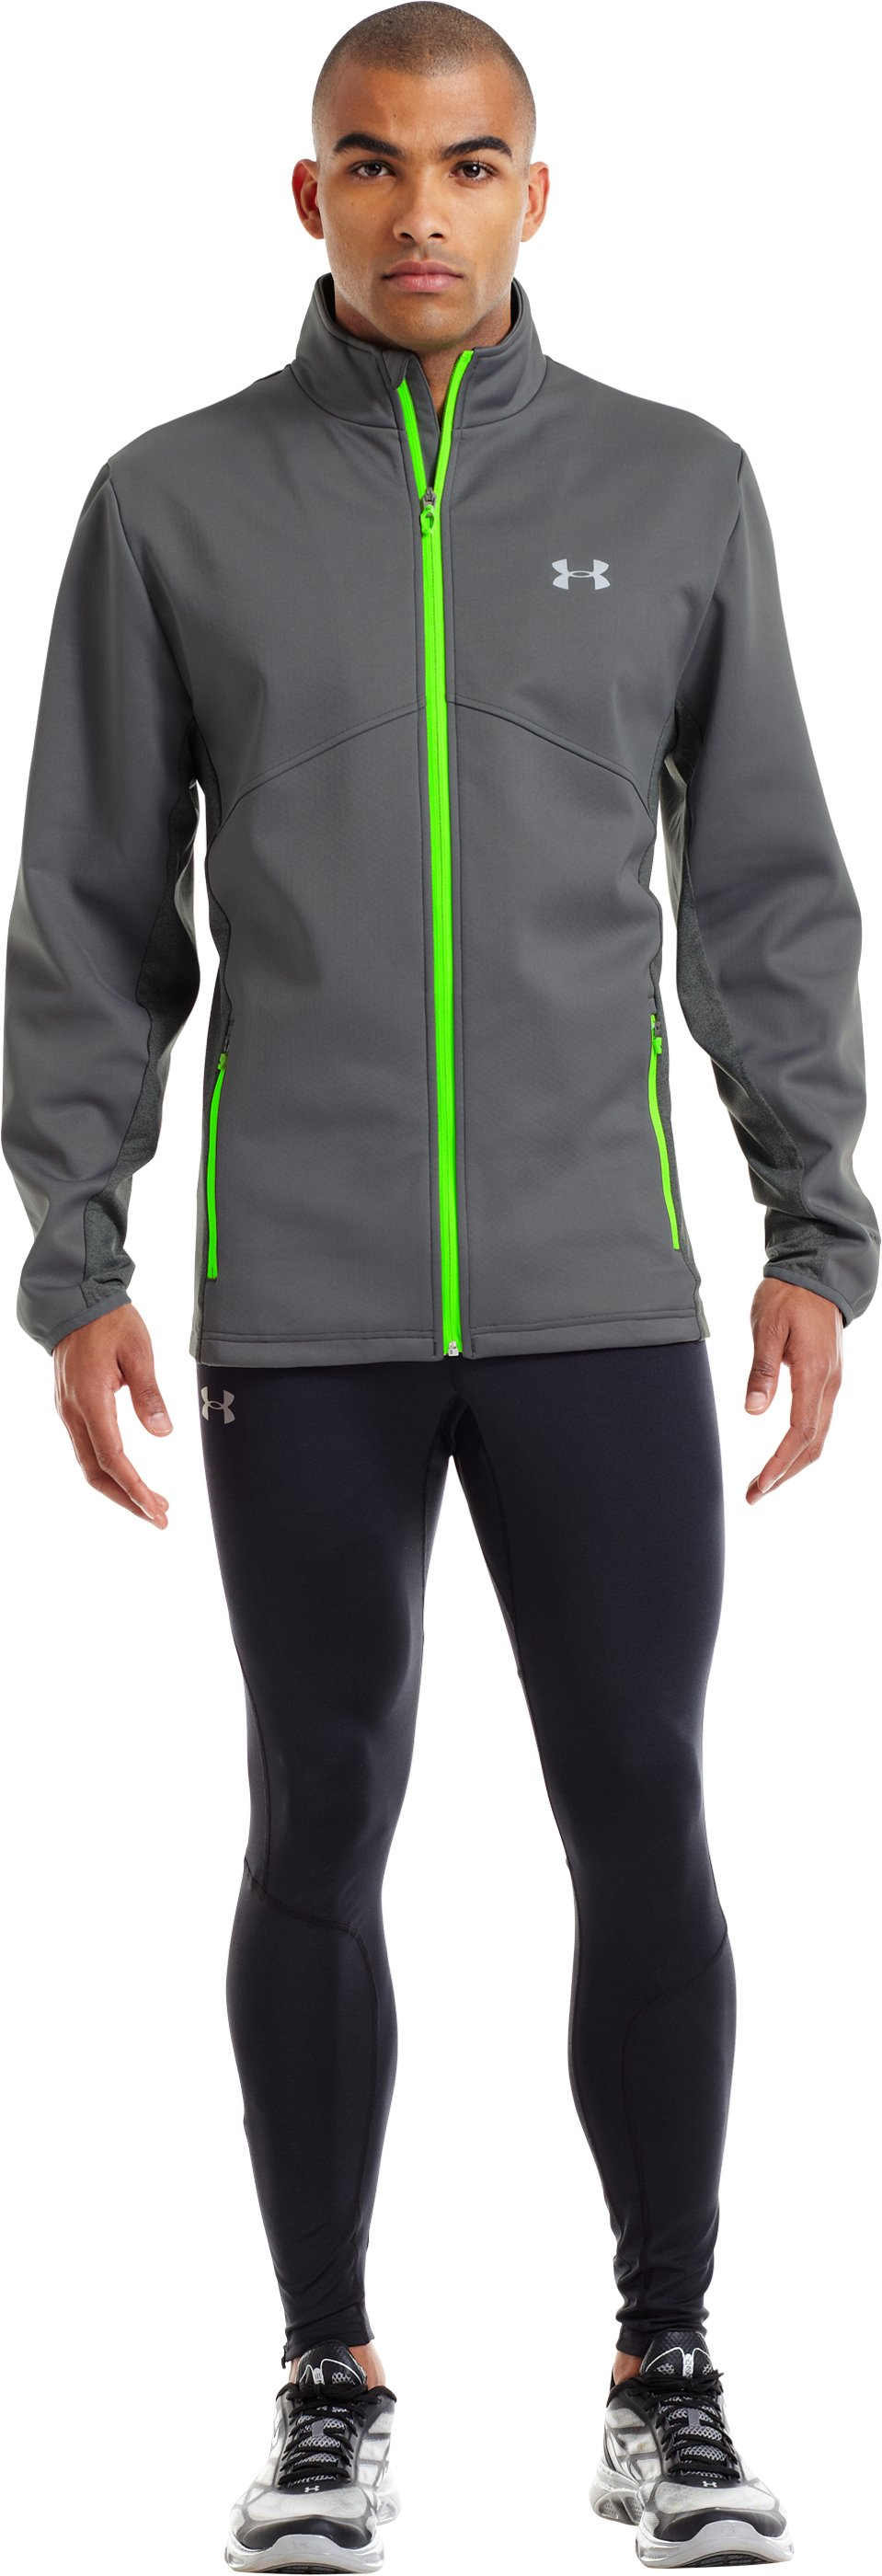 Men's ColdGear® Infrared Storm Run Jacket, Graphite, Front